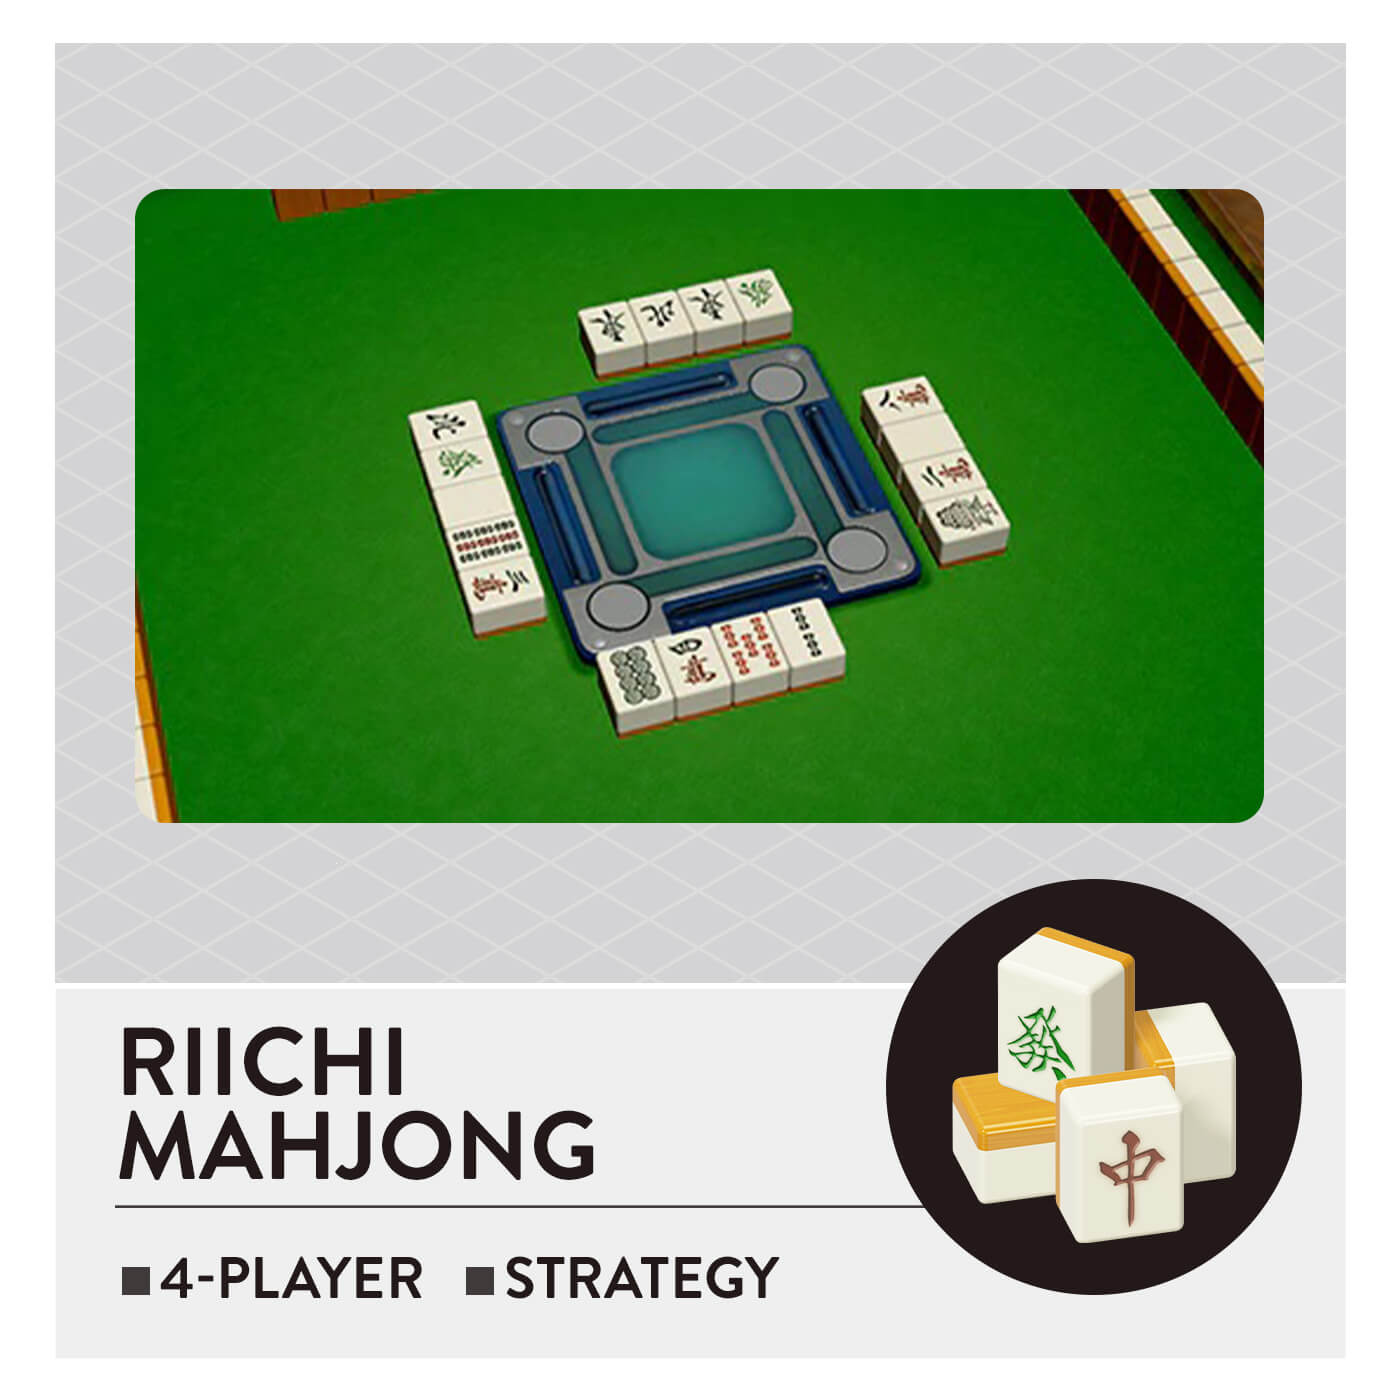 51 Worldwide Games - Riichi Mahjong